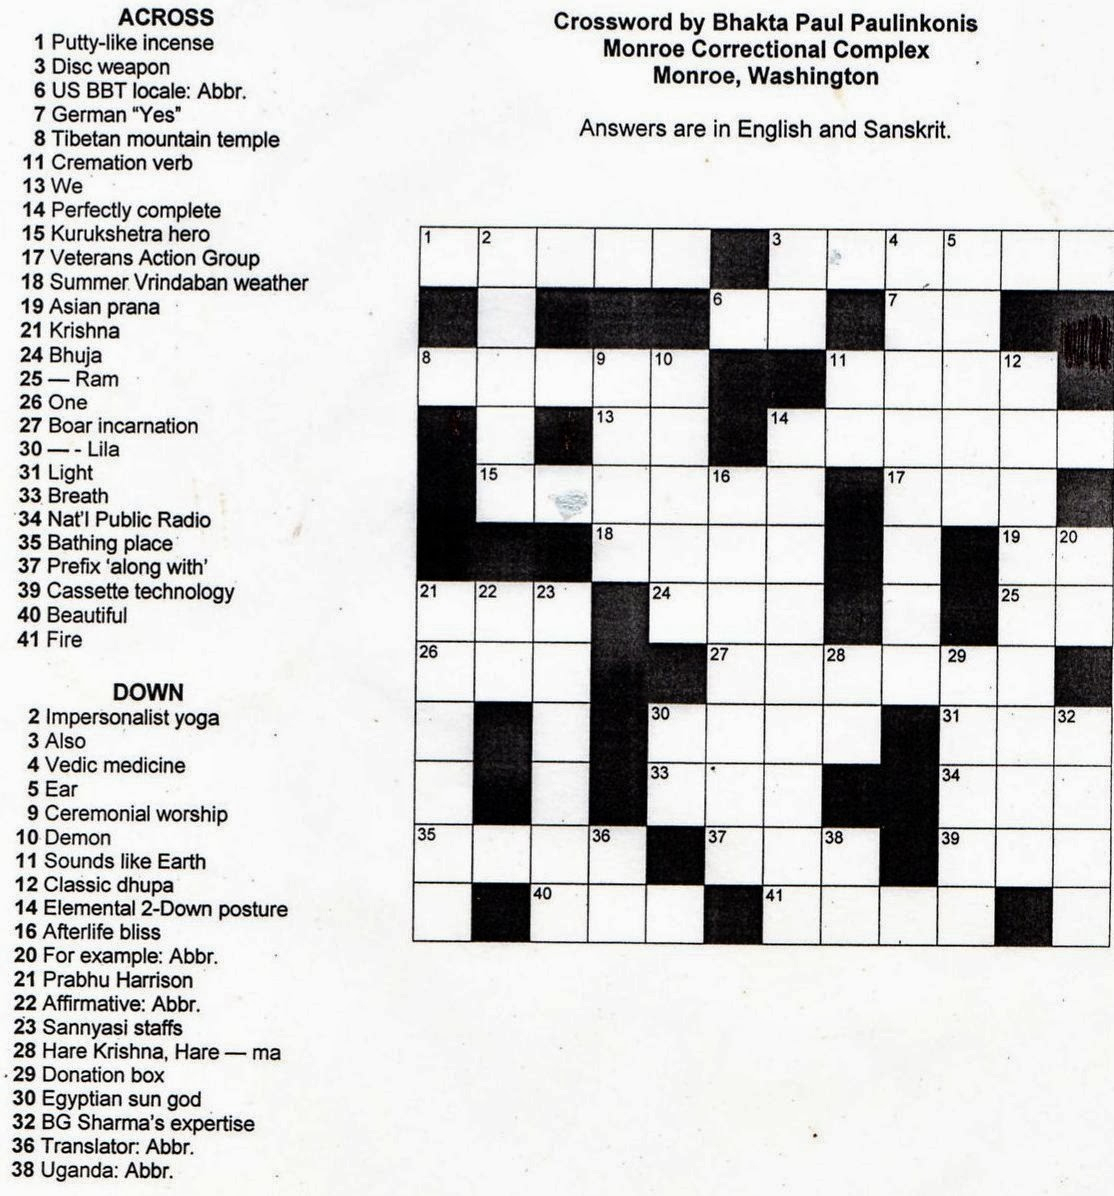 Crosswords Printable Crossword Puzzles For Middle School Puzzle - Free Printable Crossword Puzzles For Middle School